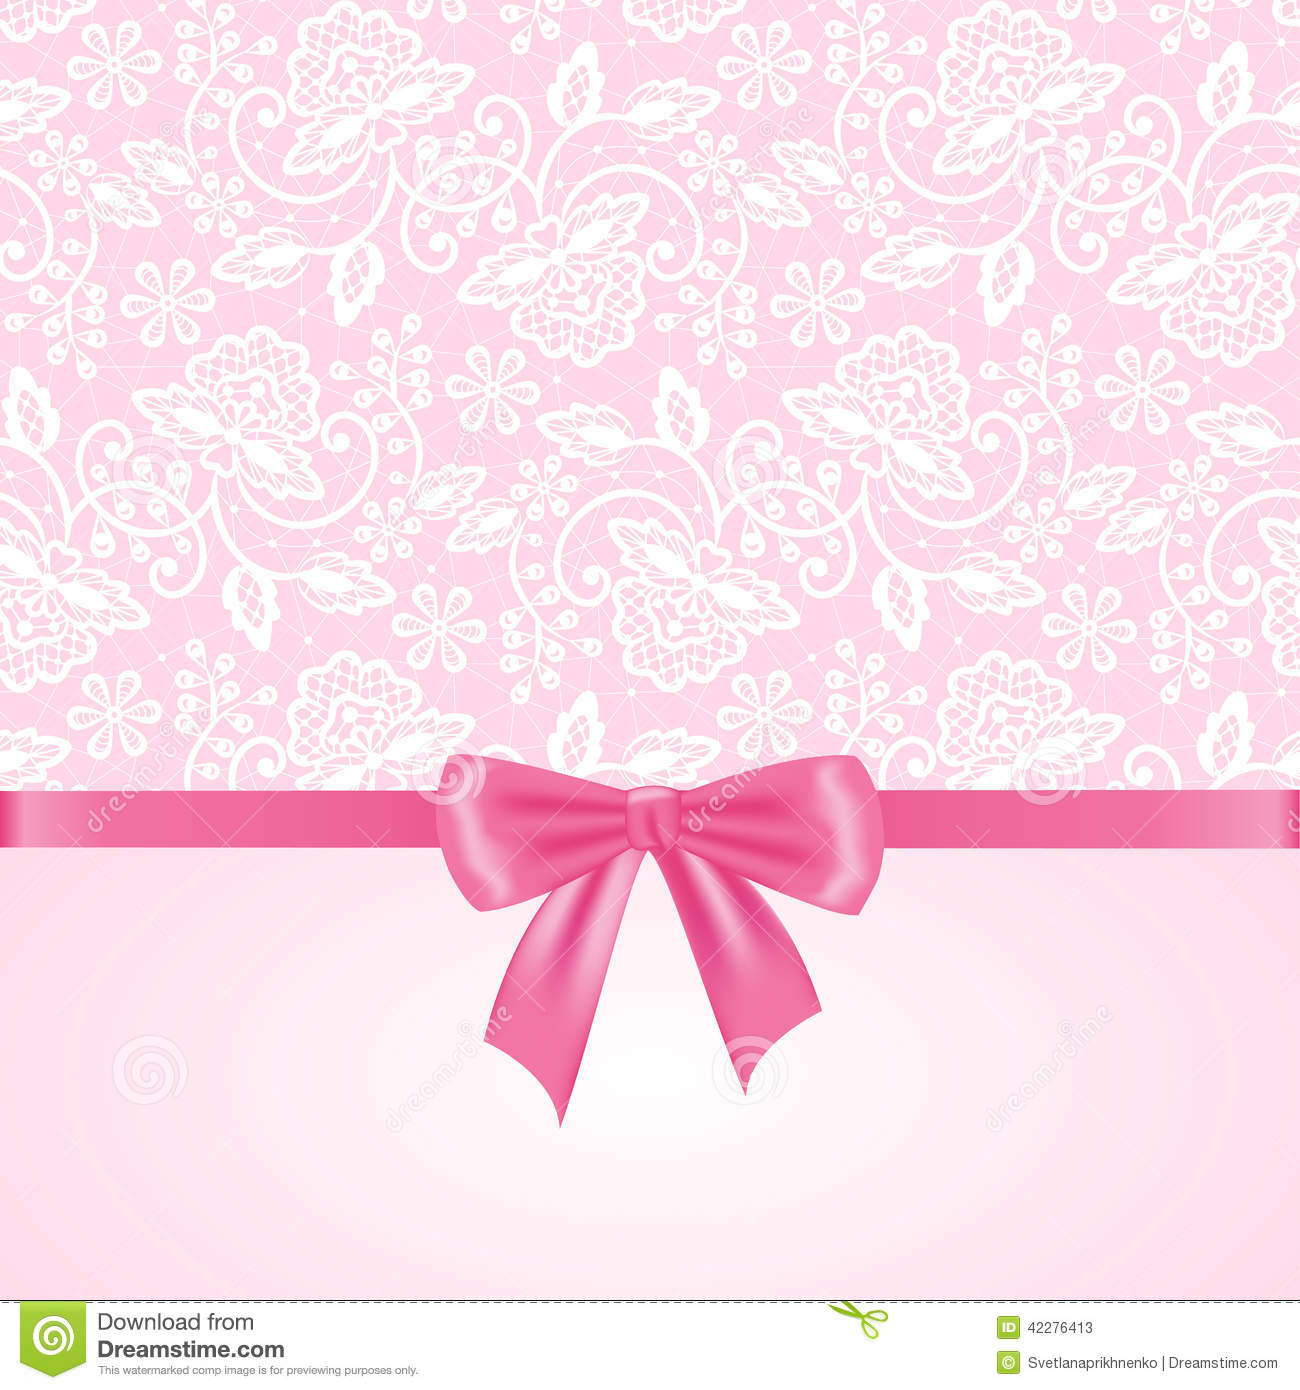 Wall Stickers Polka Dots White Lace On Pink Background Stock Vector Image 42276413